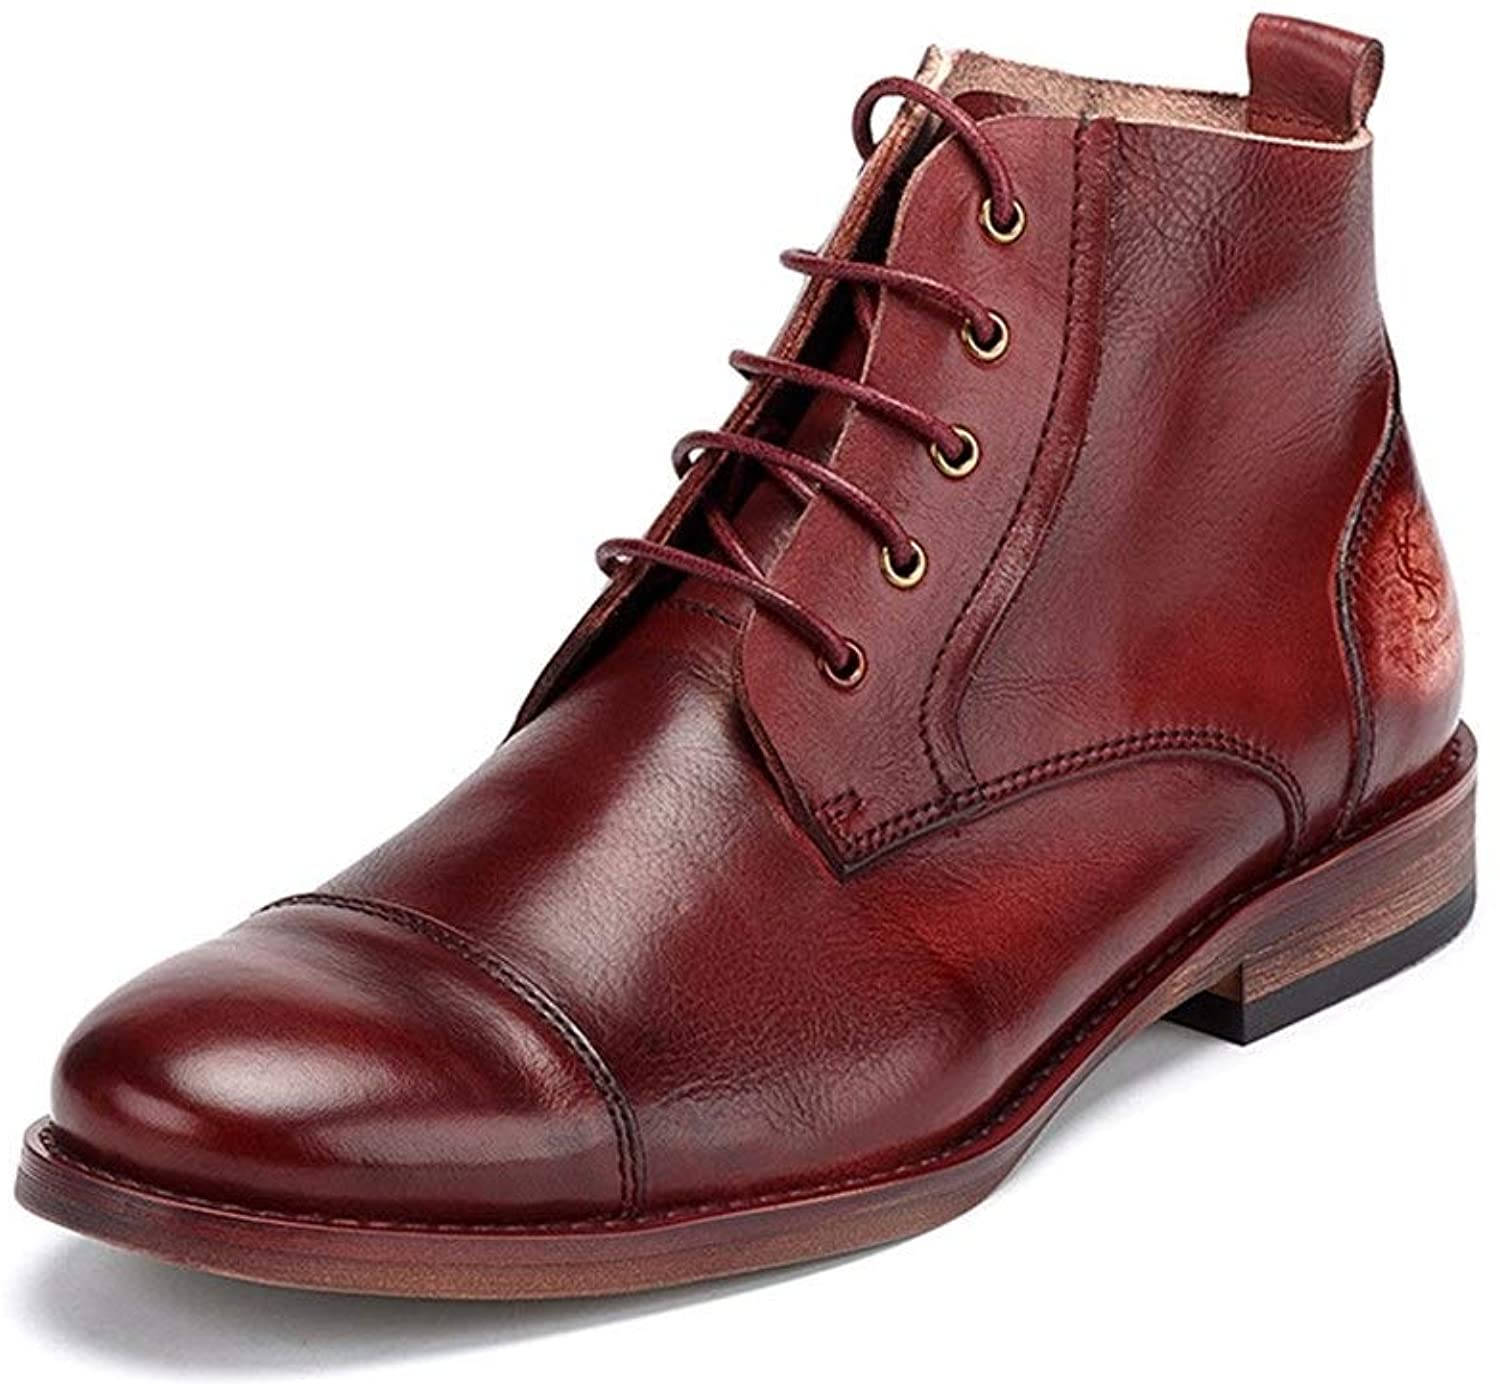 Handmade Autumn and Winter Men's Leather shoes Leather high with lace British Men's Martin Boots Men's Casual Leather Boots Tide shoes Oxfords shoes (color   Red, Size   8UK)